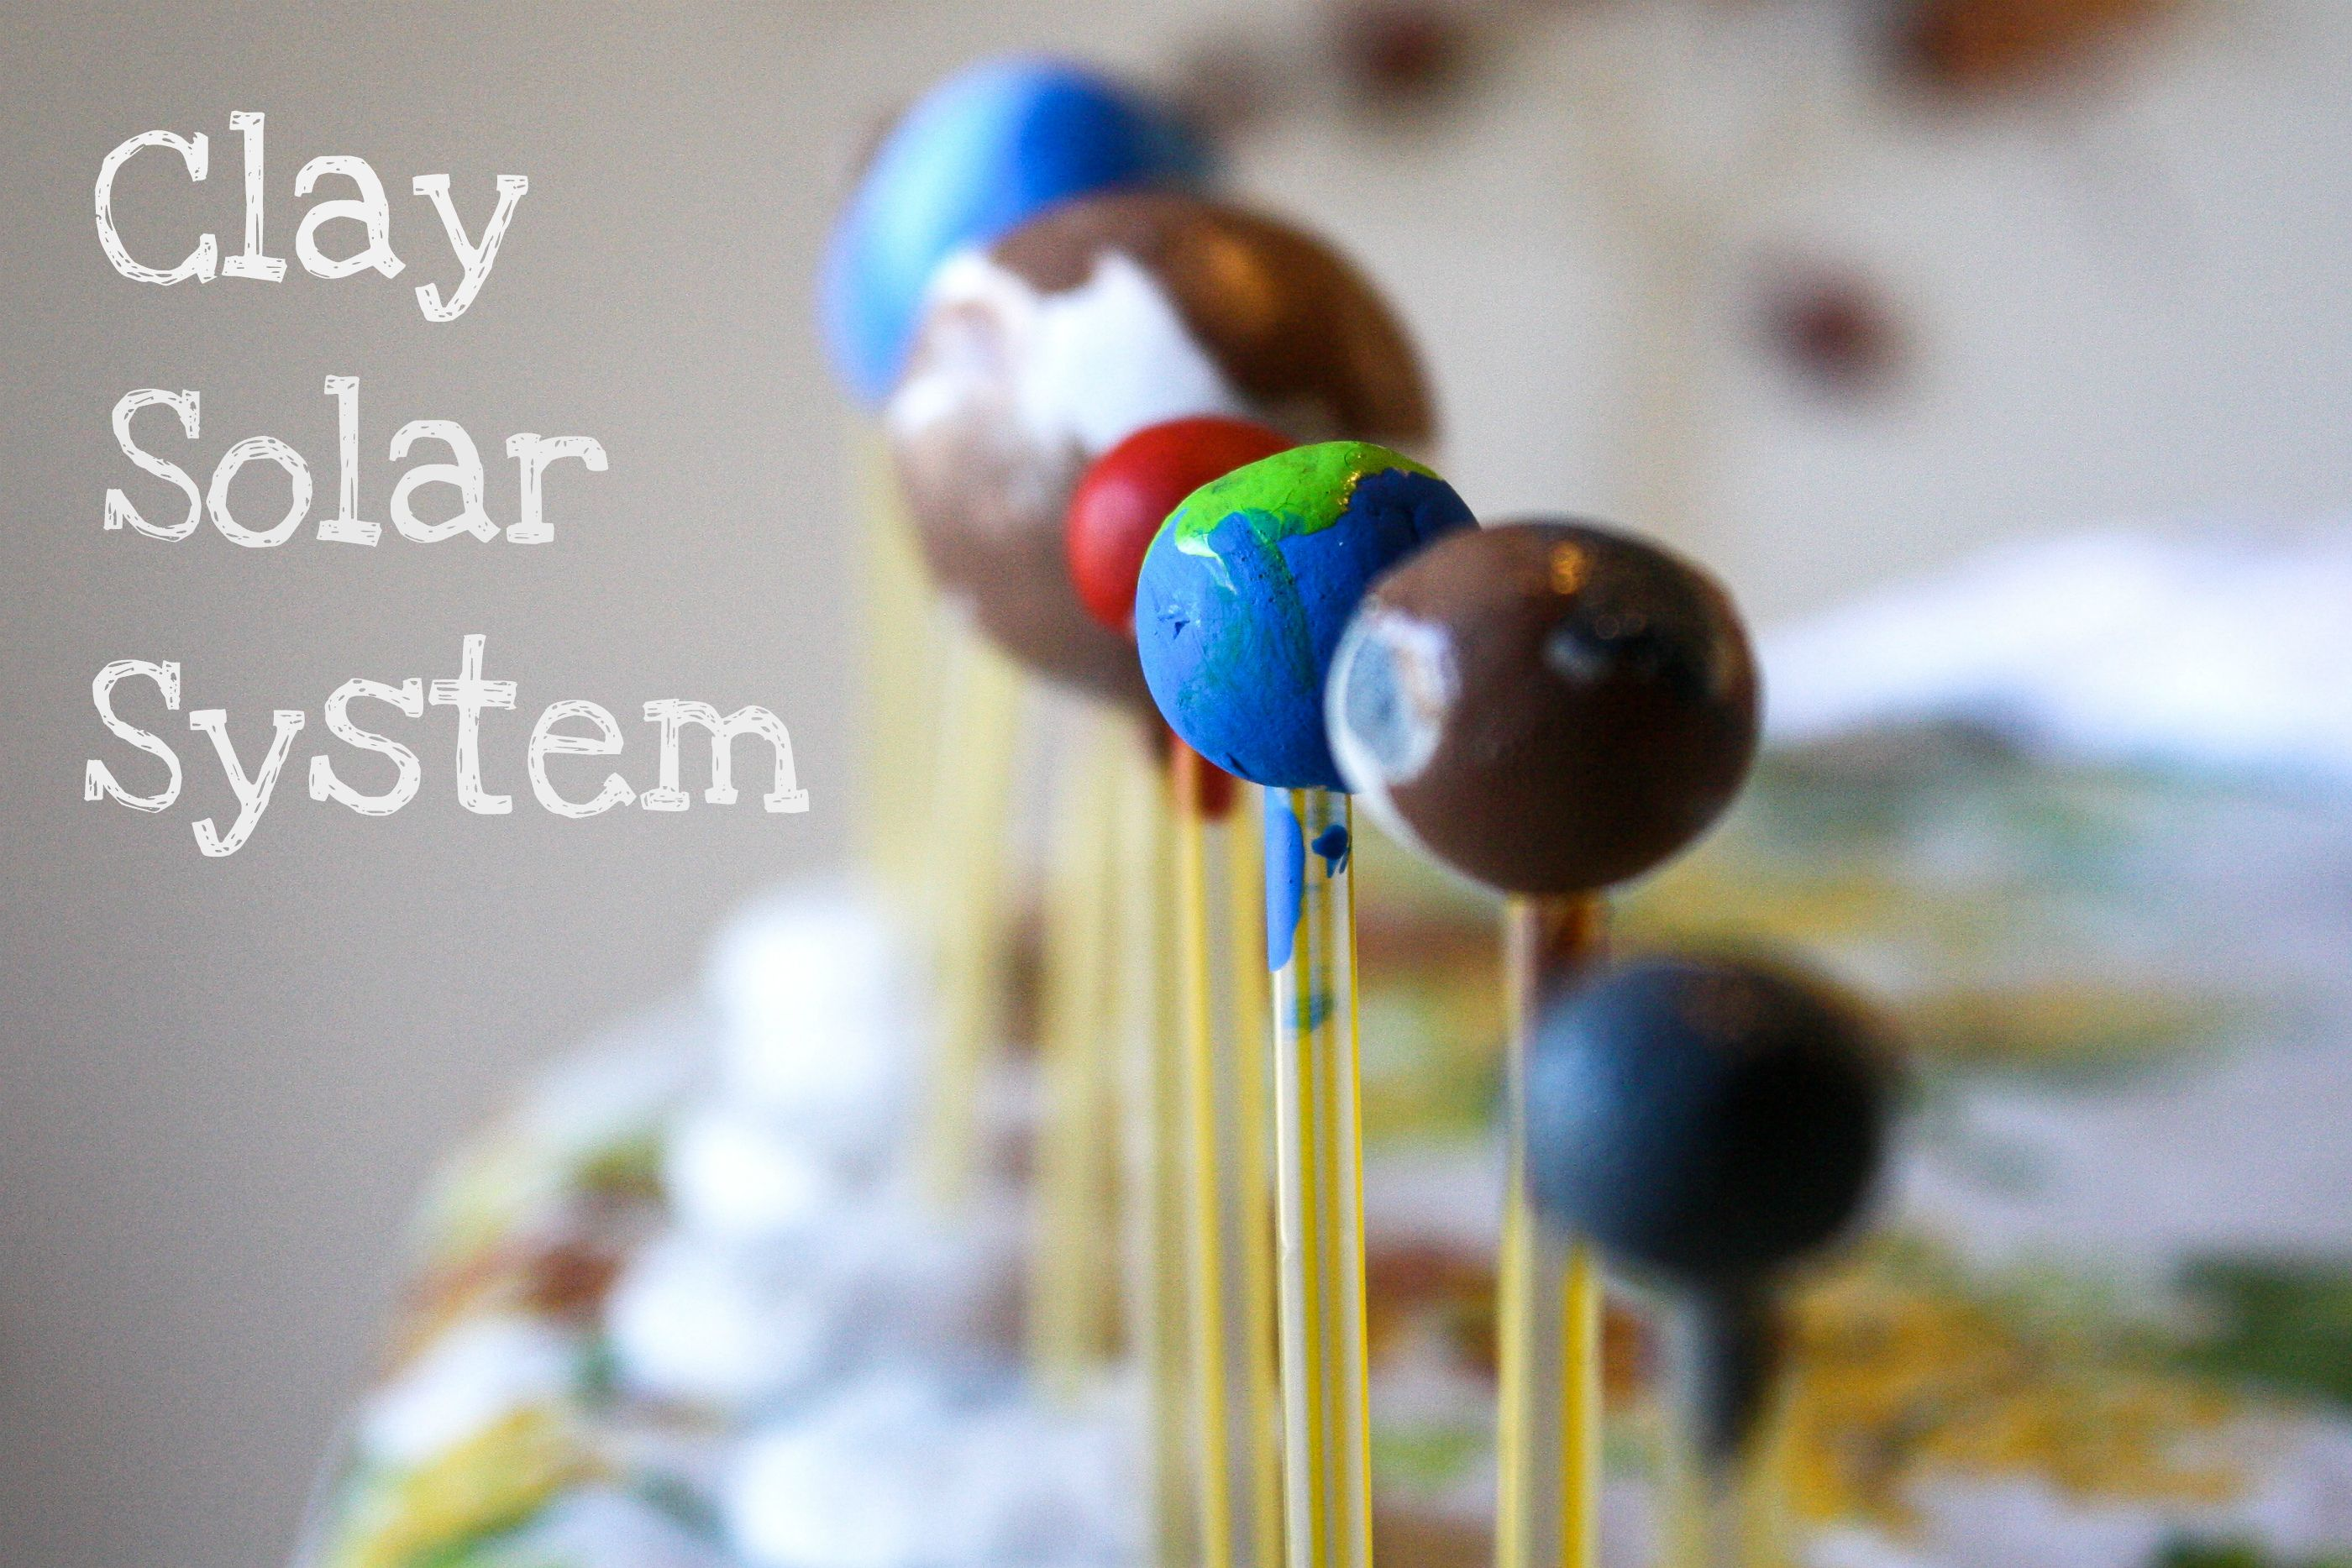 a solar system made of clay - photo #5